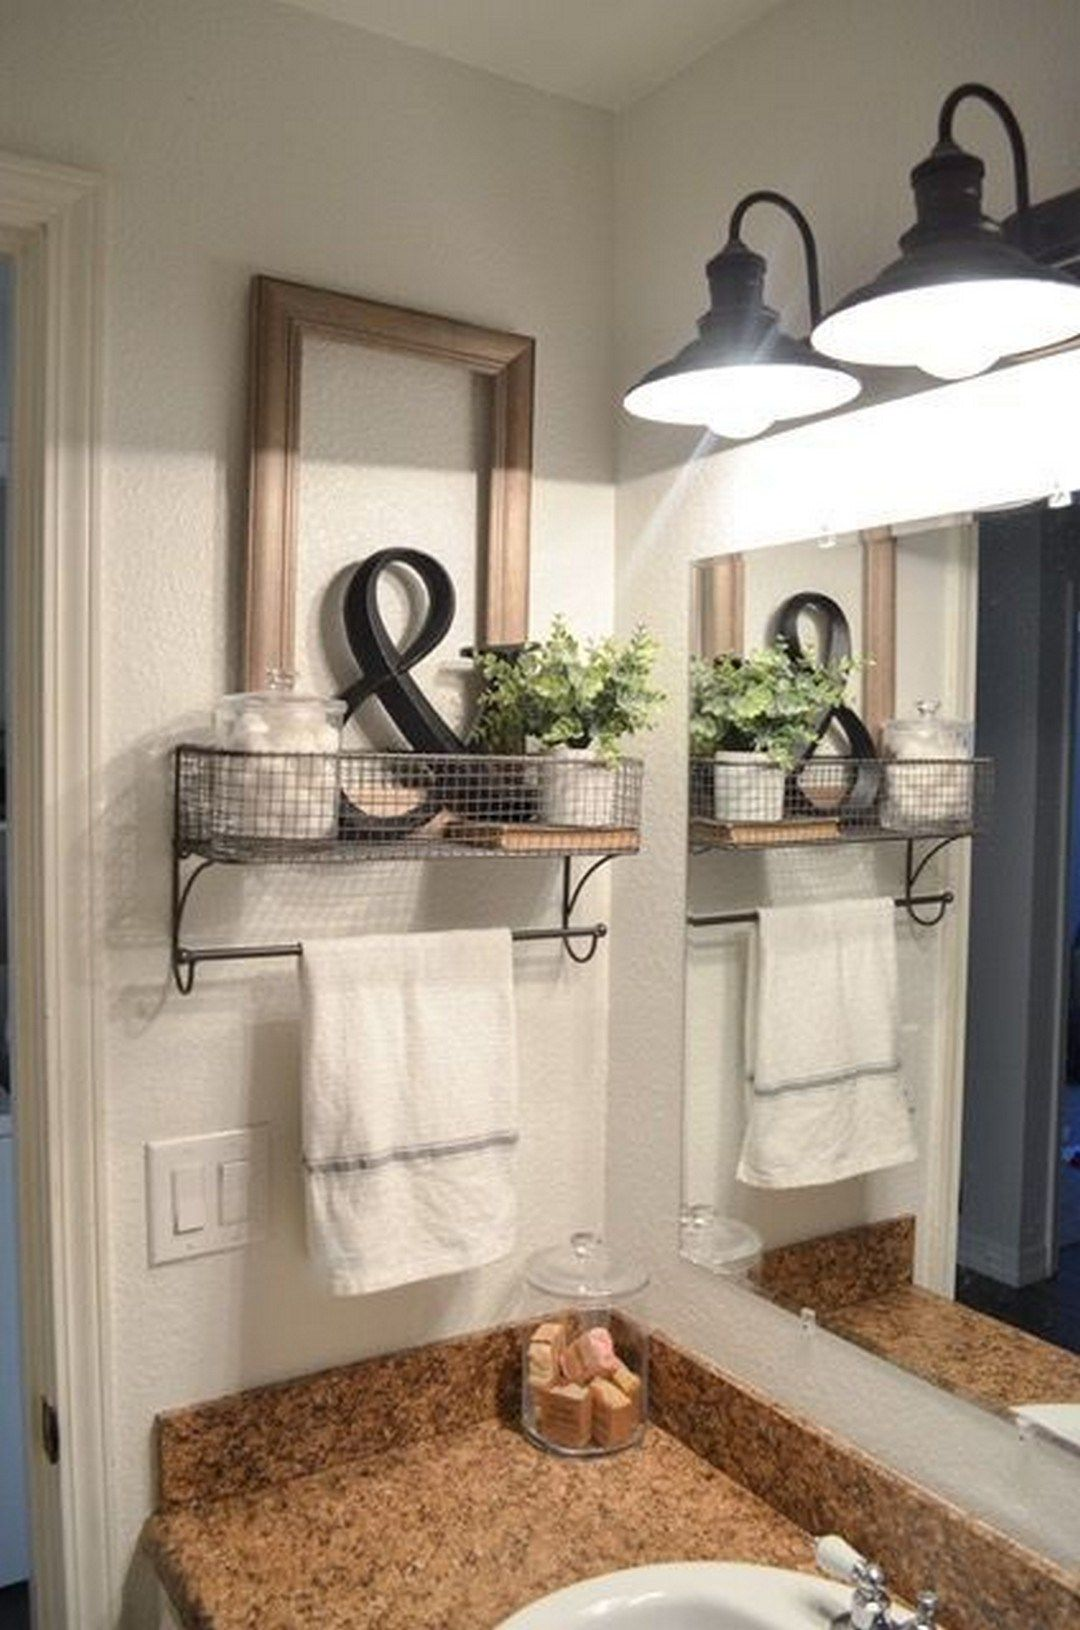 Towel Rack Decoration Ideas To Match Your Minimalist Bathroom Goodnewsarchitecture Farmhouse Bathroom Organizers Farmhouse Bathroom Decor Small Bathroom Remodel